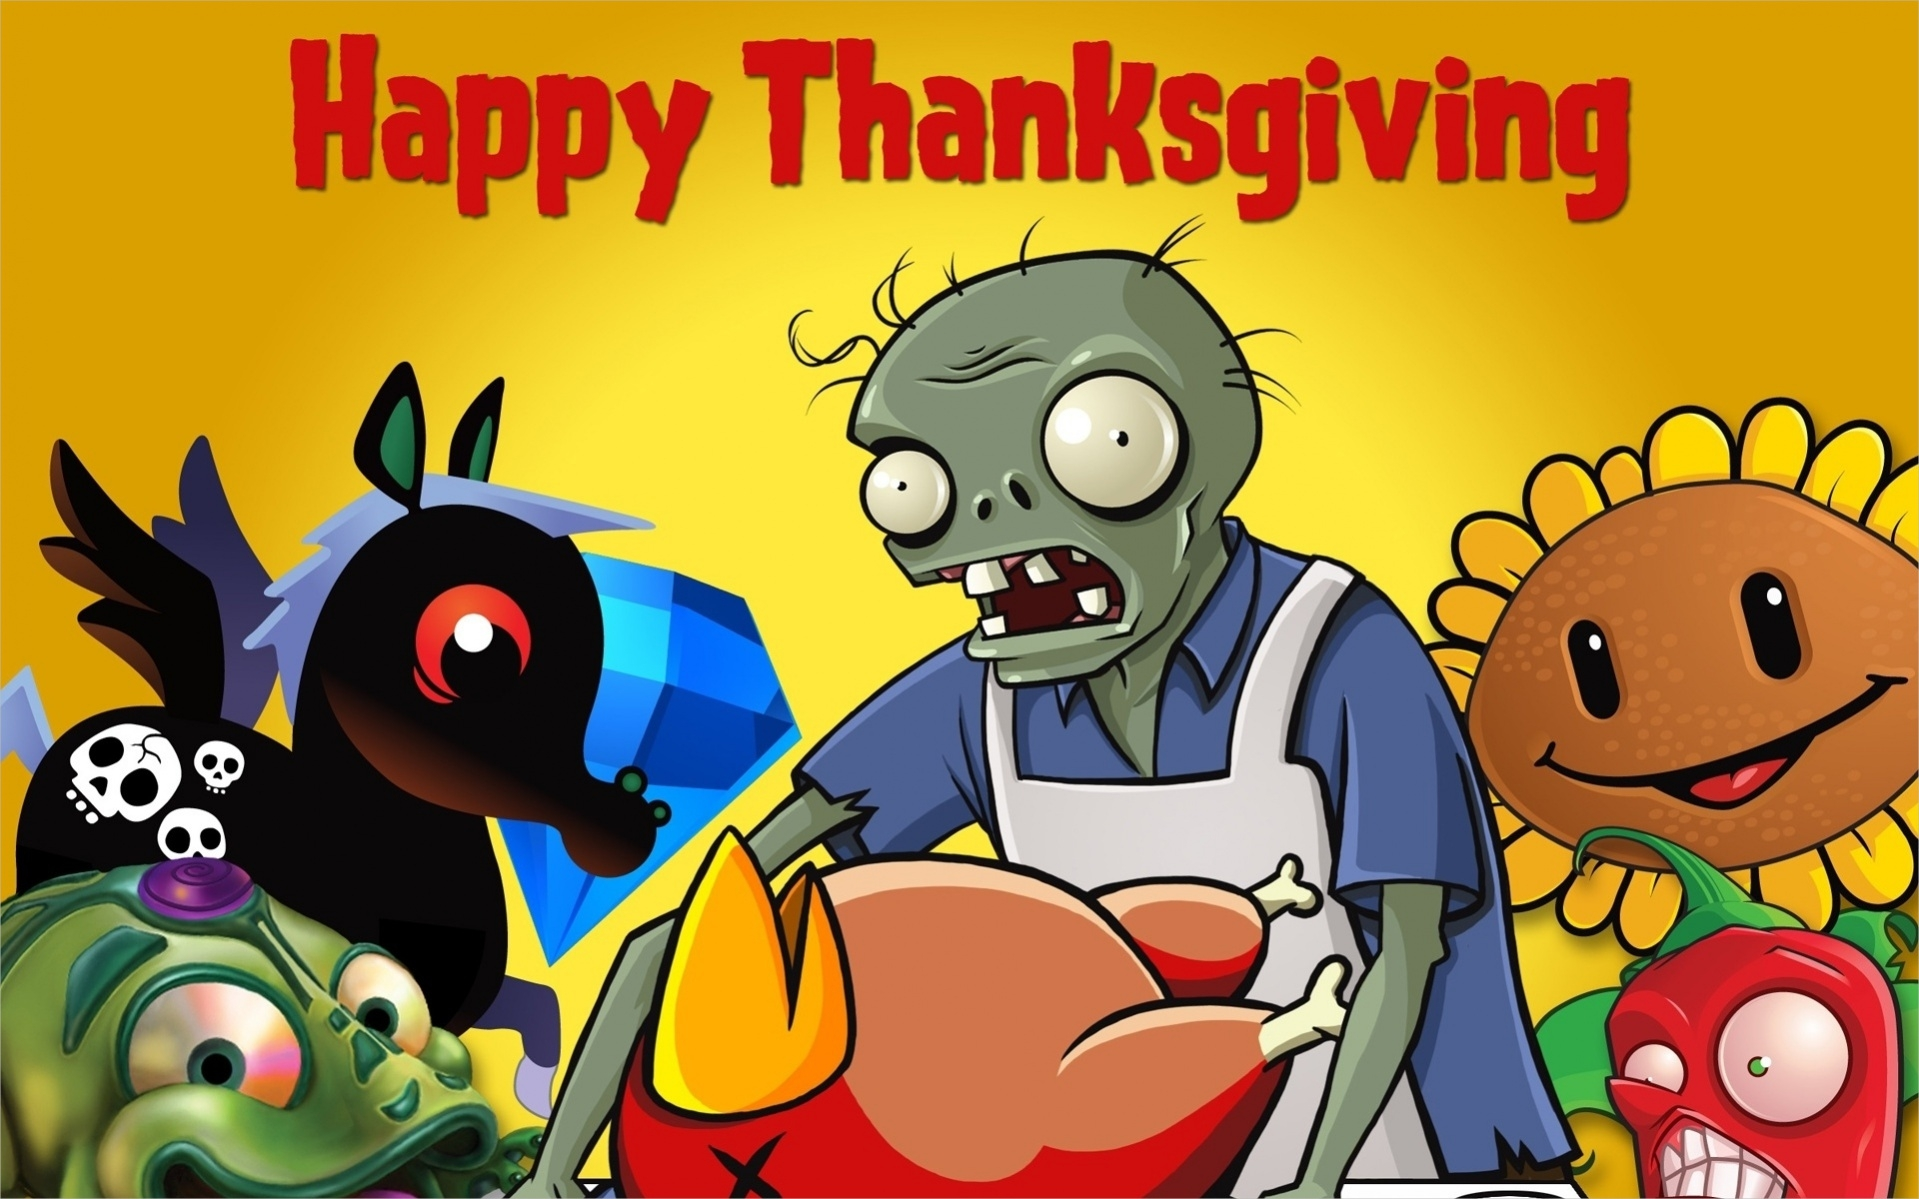 Free Animated Thanksgiving Wallpaper